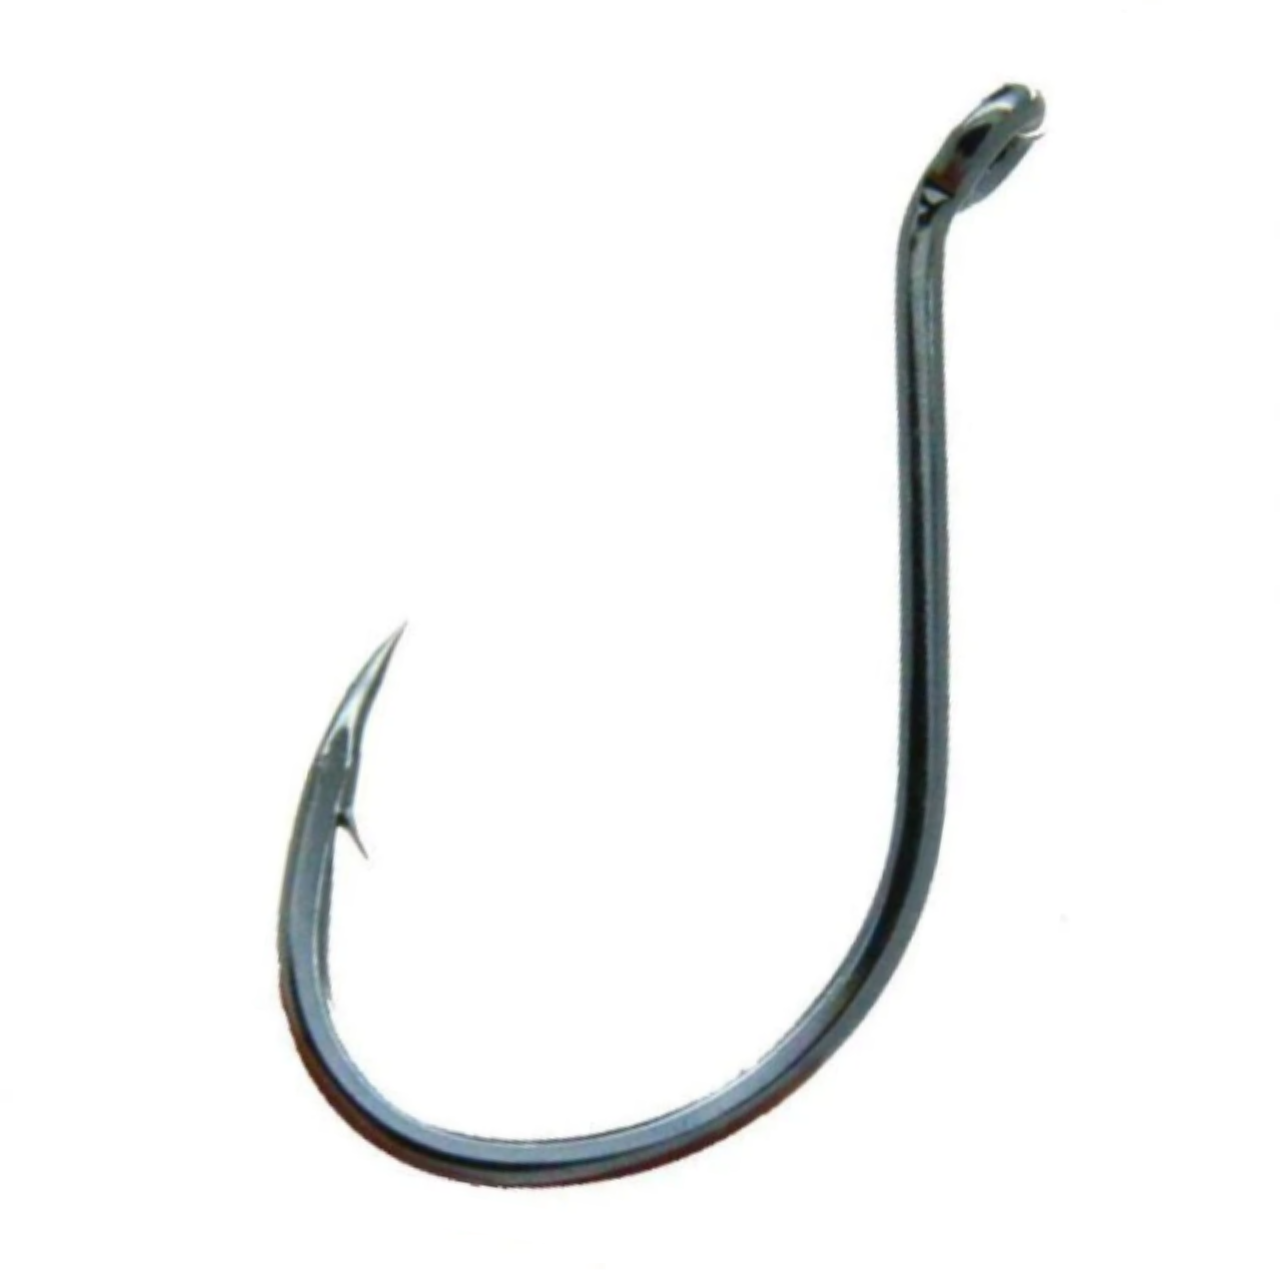 BKK Black Octopus Beak Hook Pkt